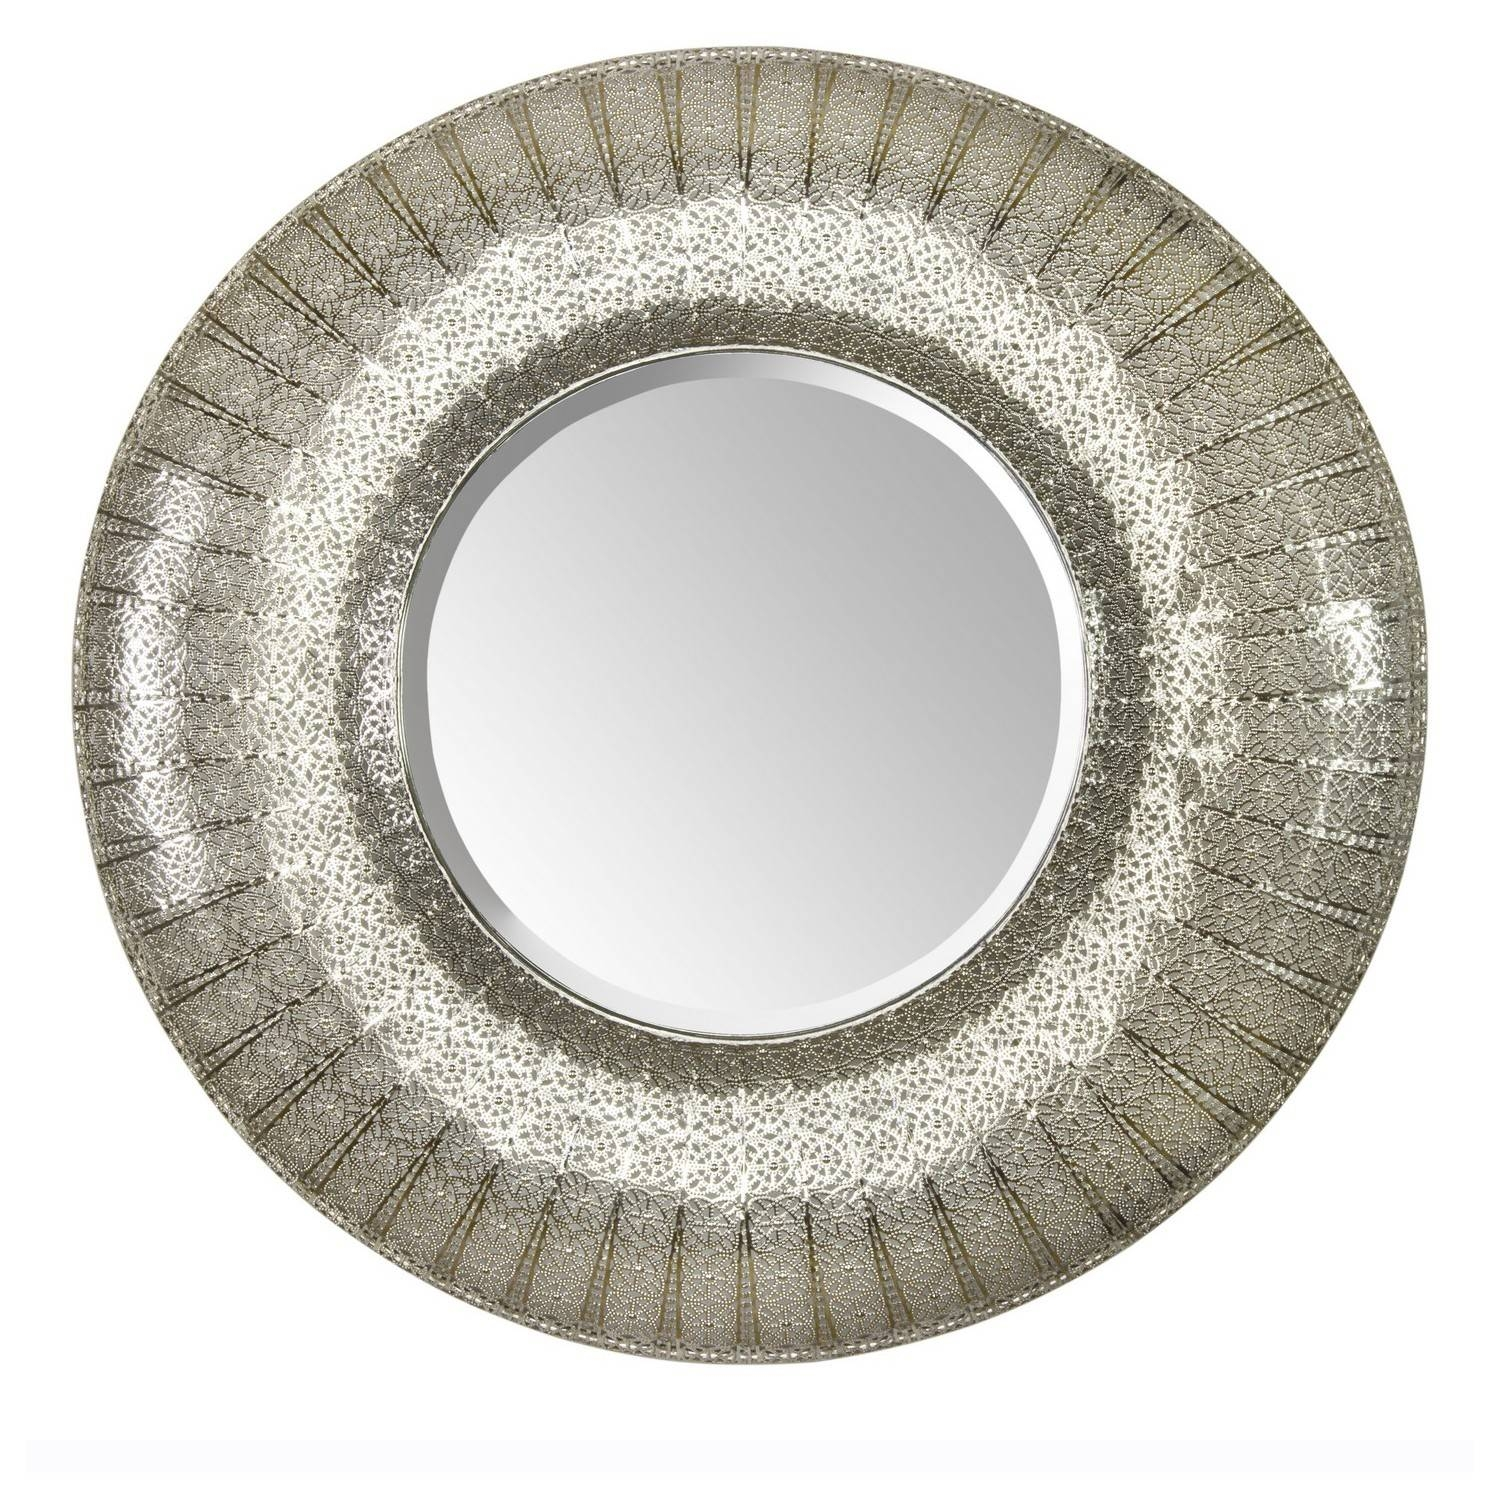 Large Round Silver Mirror 57 Trendy Interior Or Design Wall in Round Large Mirrors (Image 12 of 25)